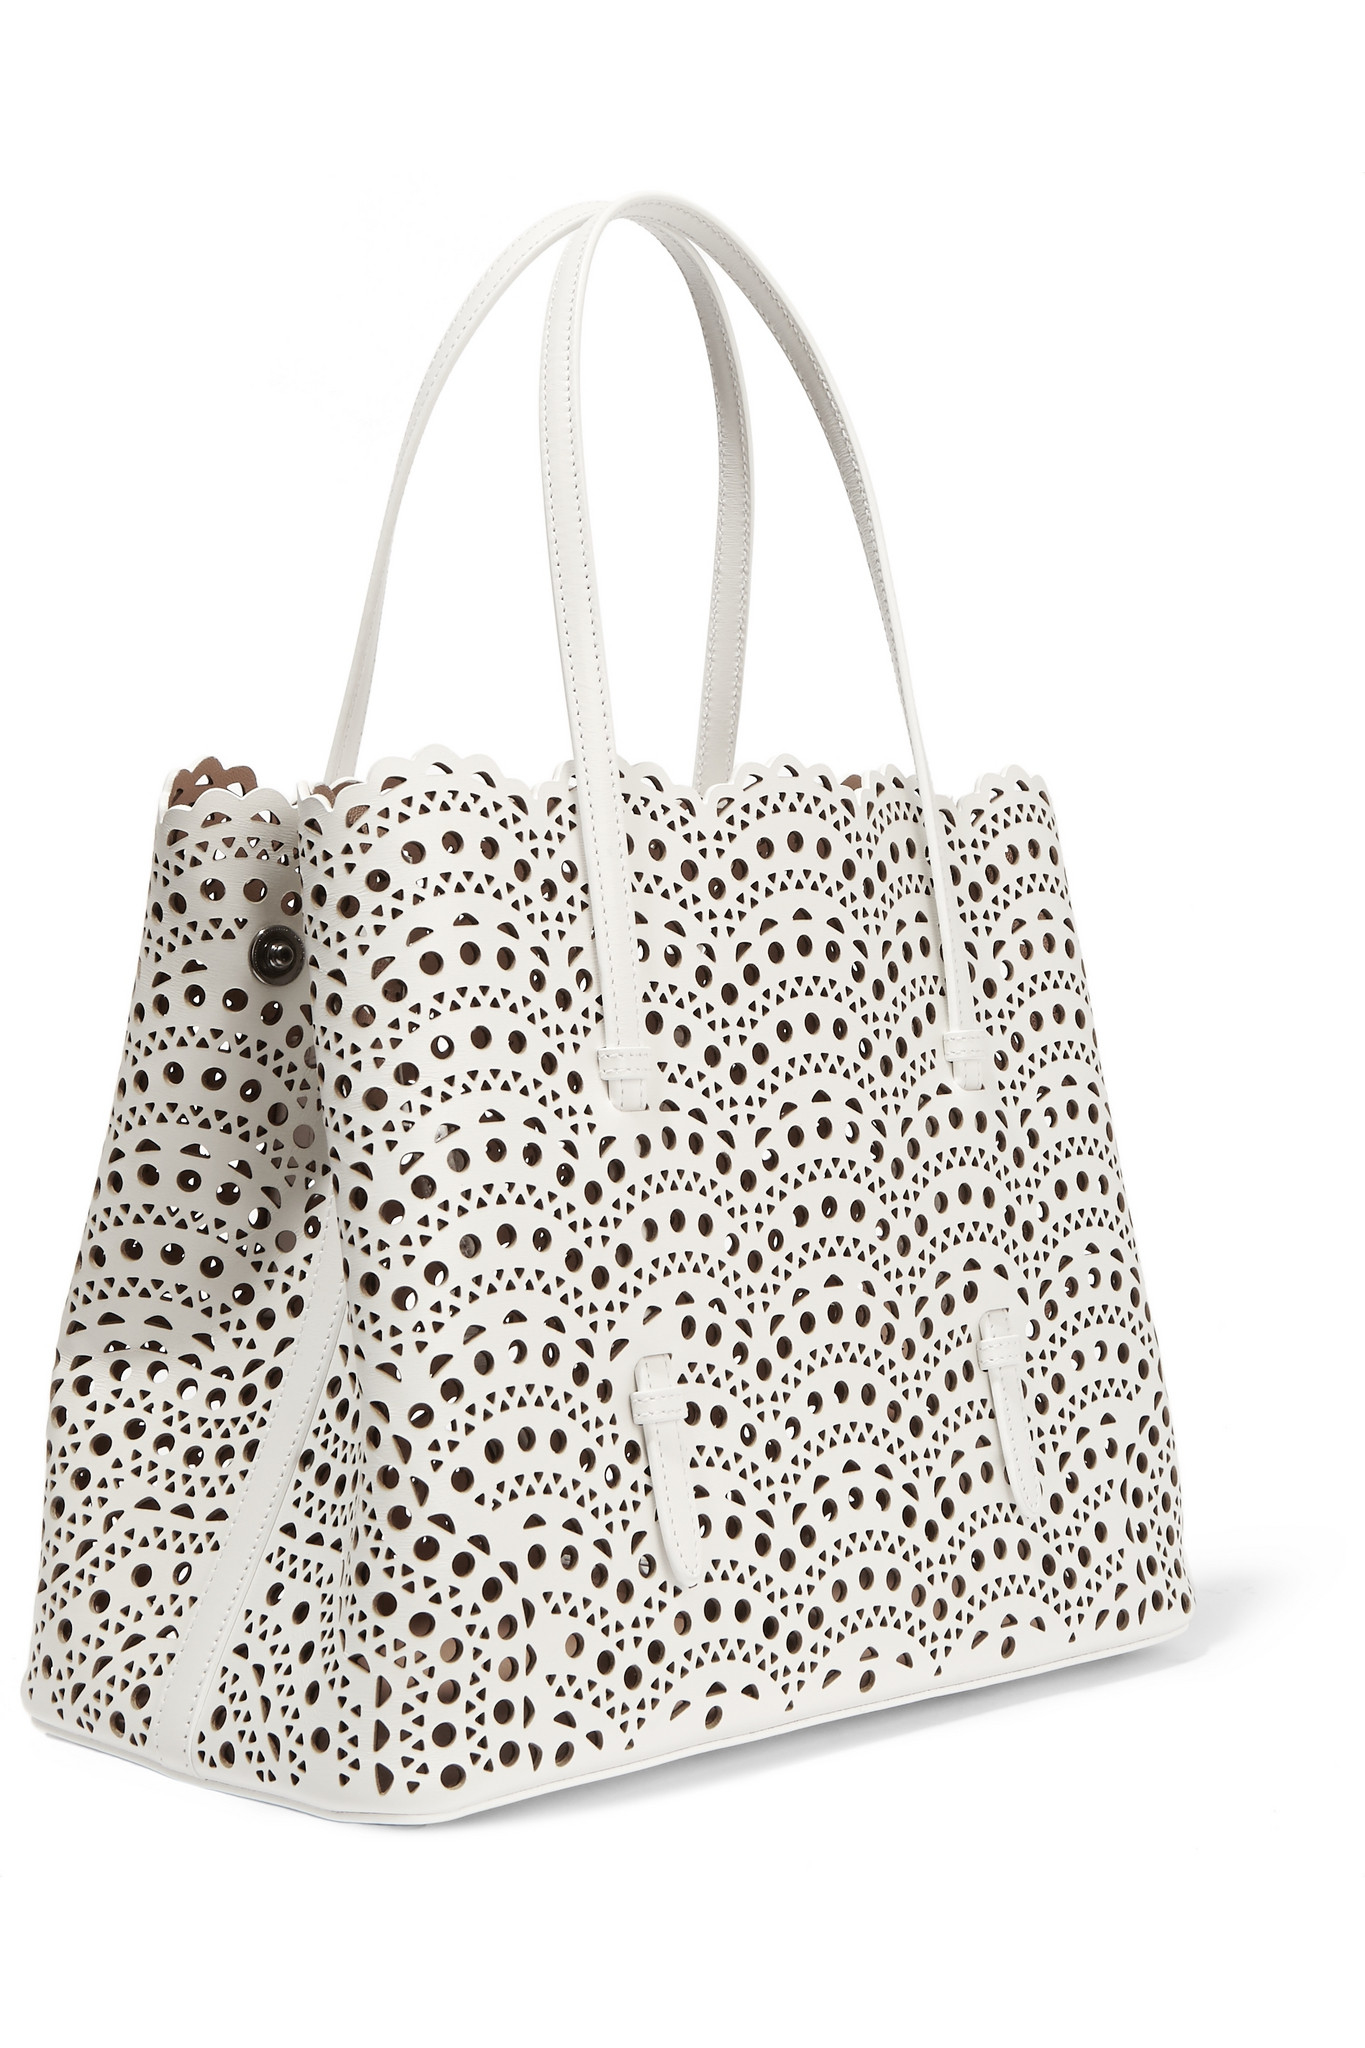 Alaia Black and white large tote bag SIsEoCj8